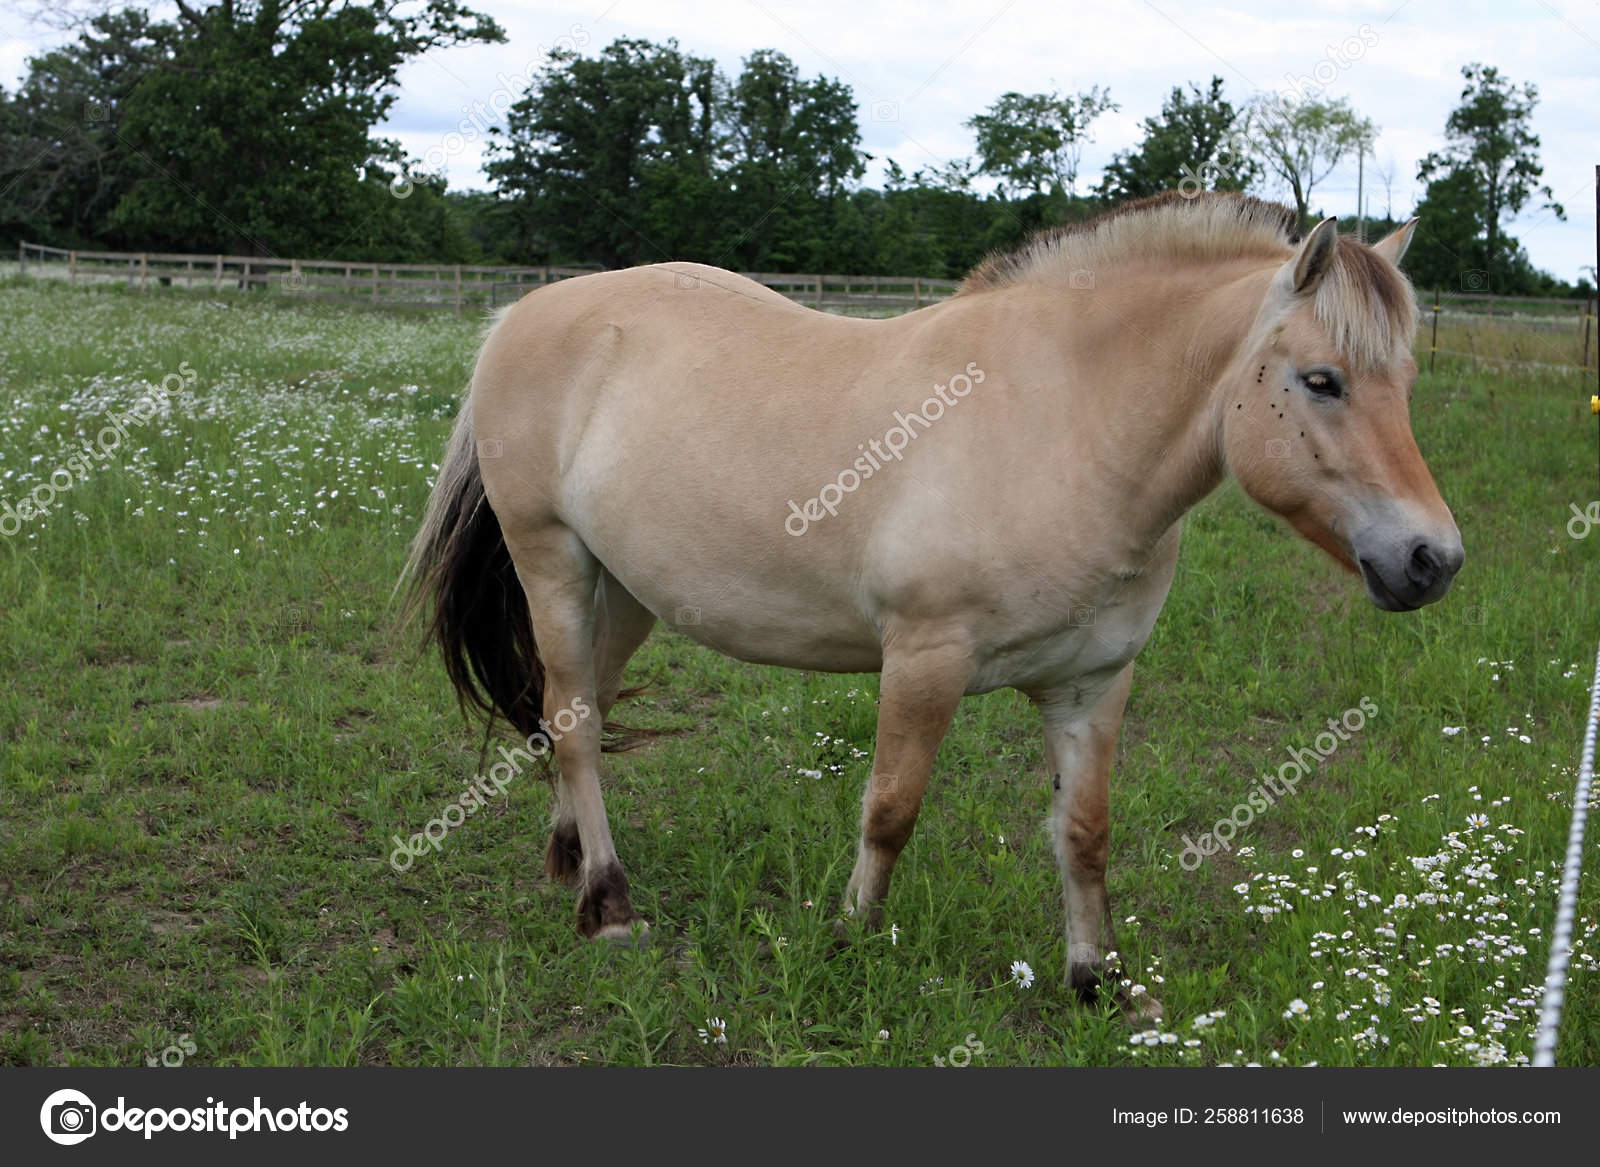 Norwegian Fjord Horse Feeding Grass Field Stock Photo C Yayimages 258811638